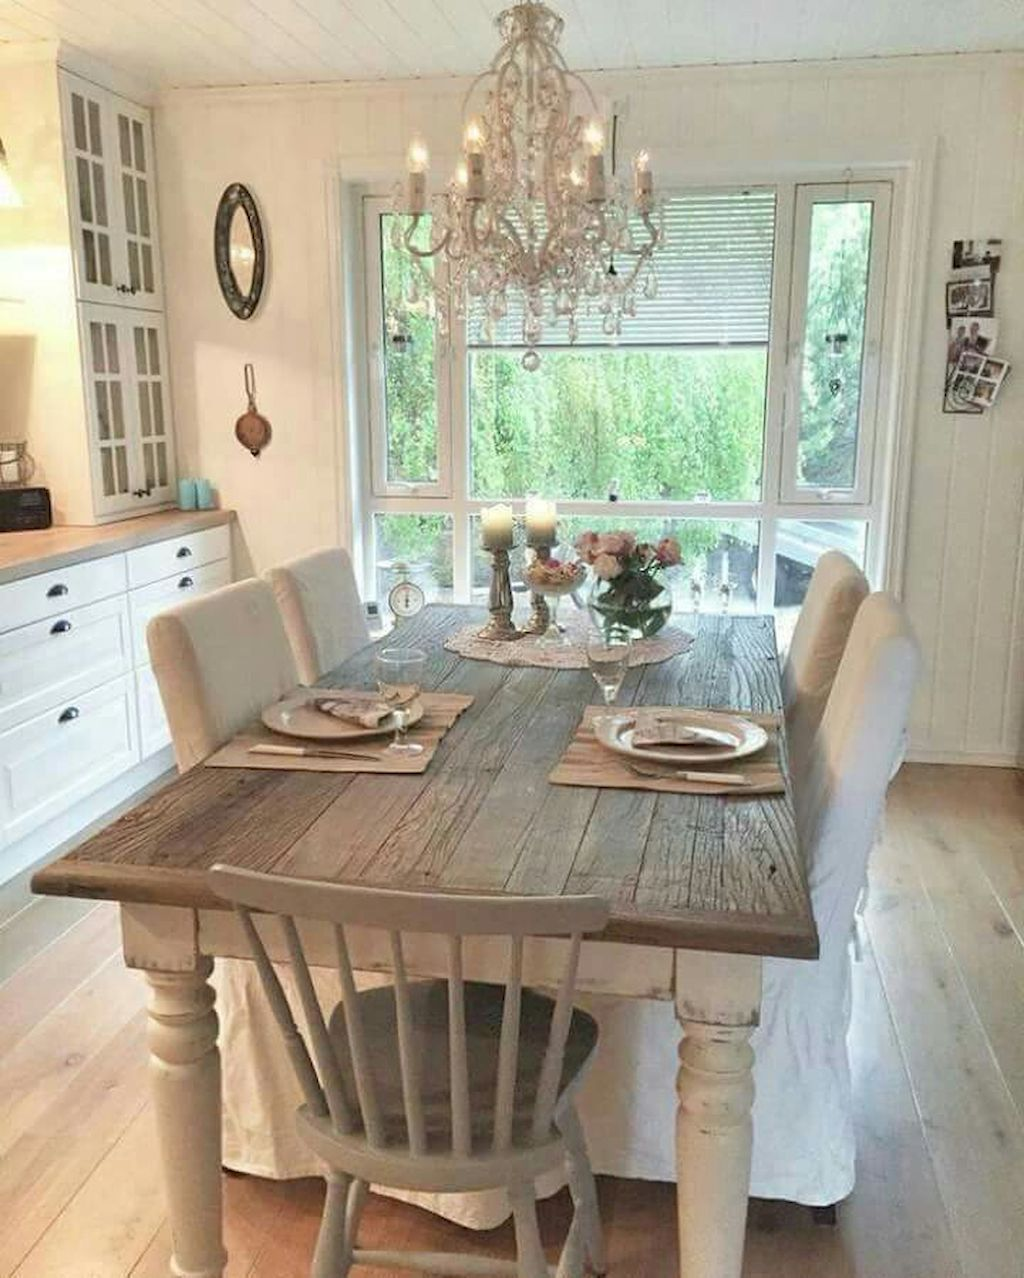 French Country Dining Room Table And Decor Ideas 50 With Images